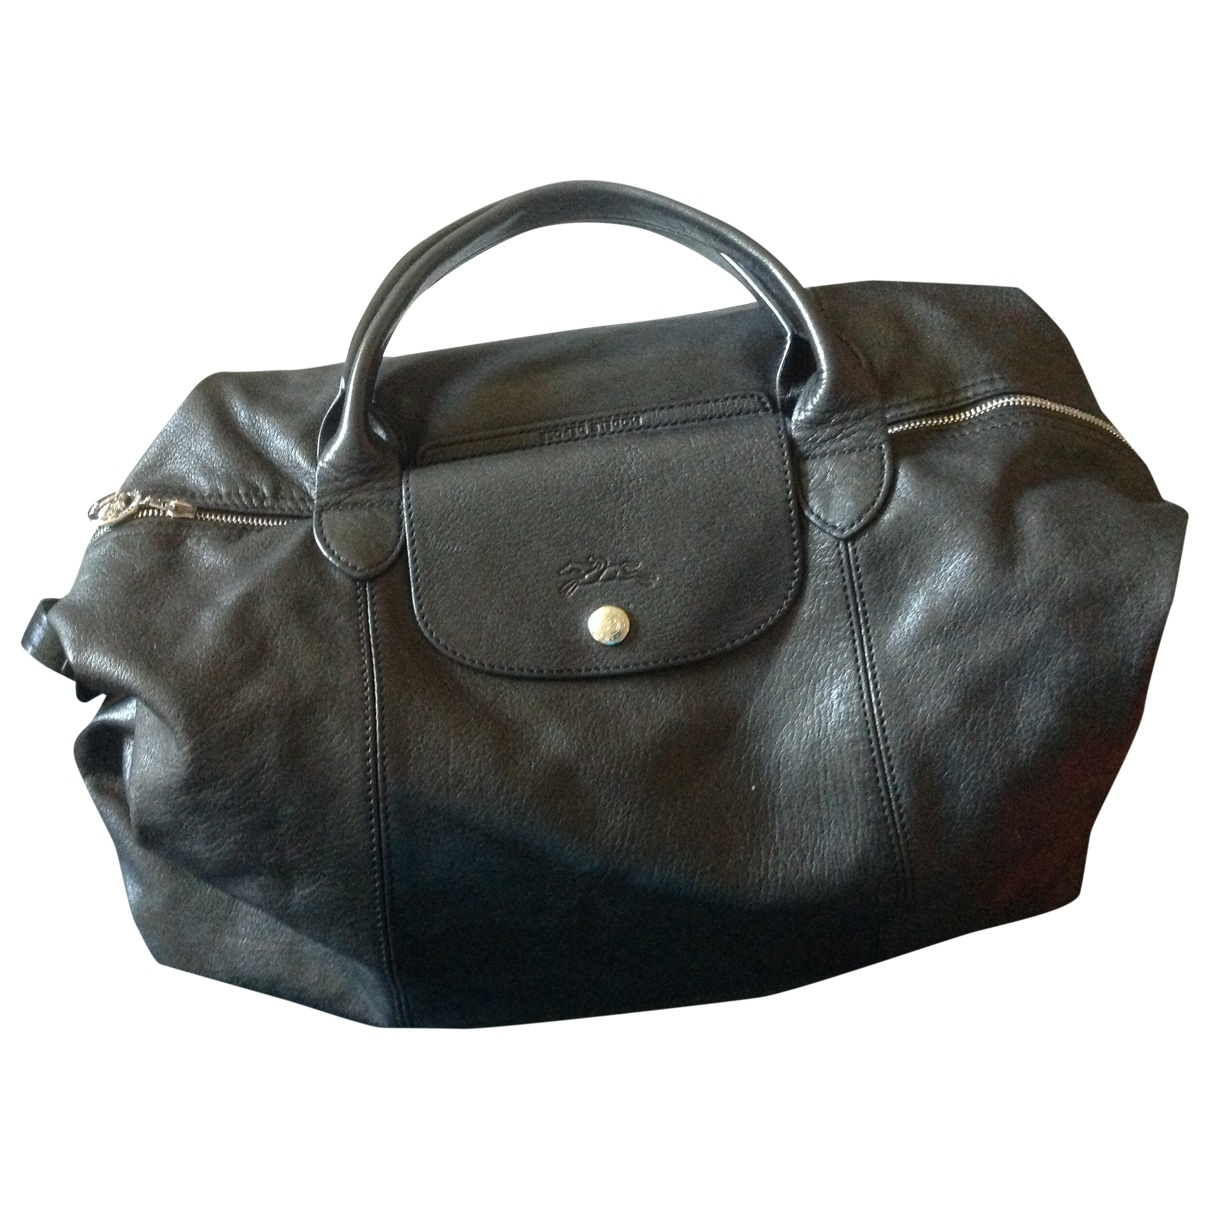 Longchamp Pliage  Black Leather handbag for Women \N